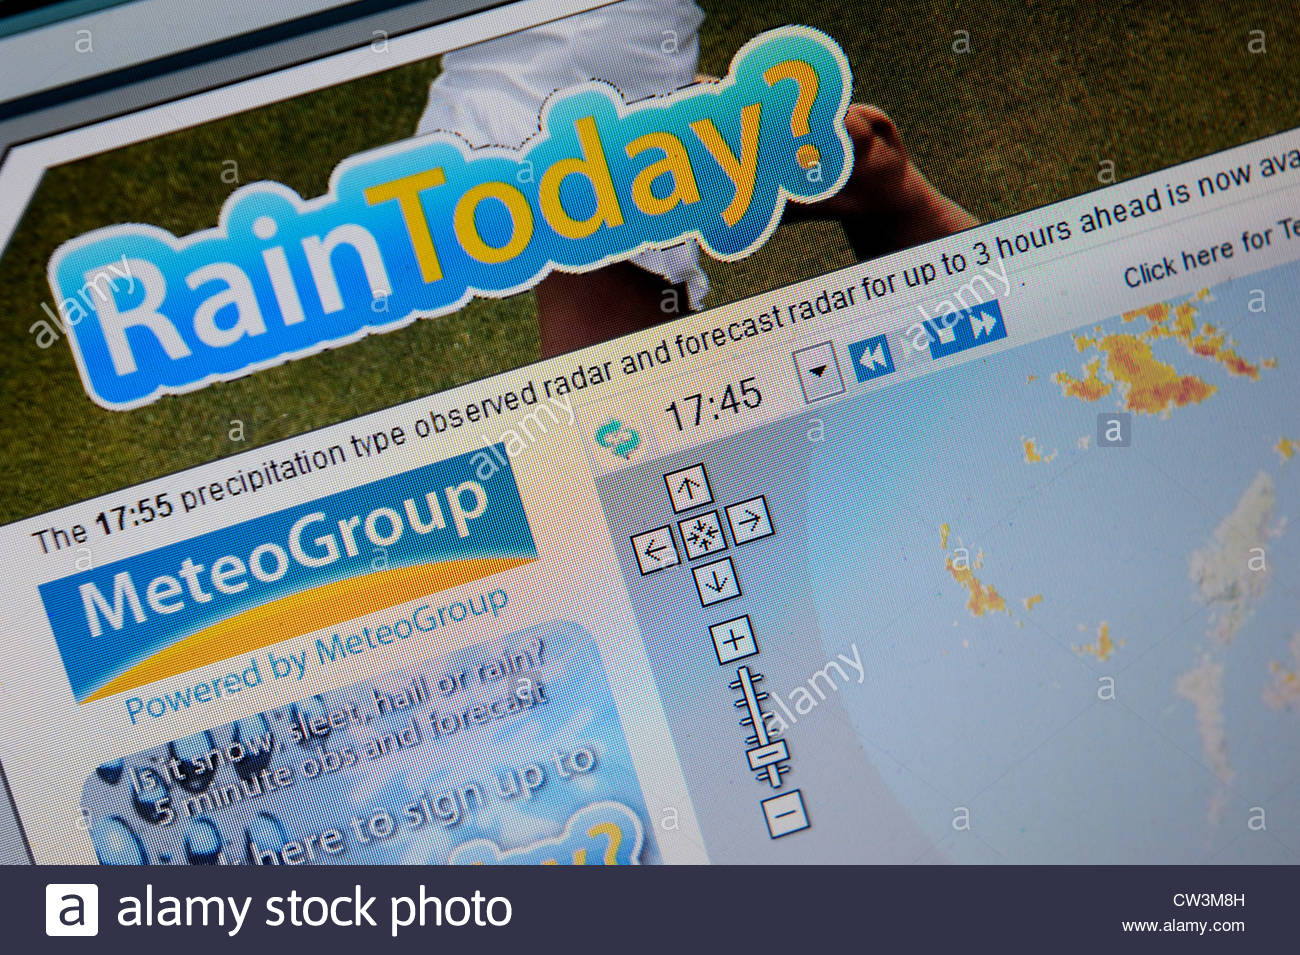 Raintoday? website gives minute by minute weather forecasts for the UK. - Stock Image